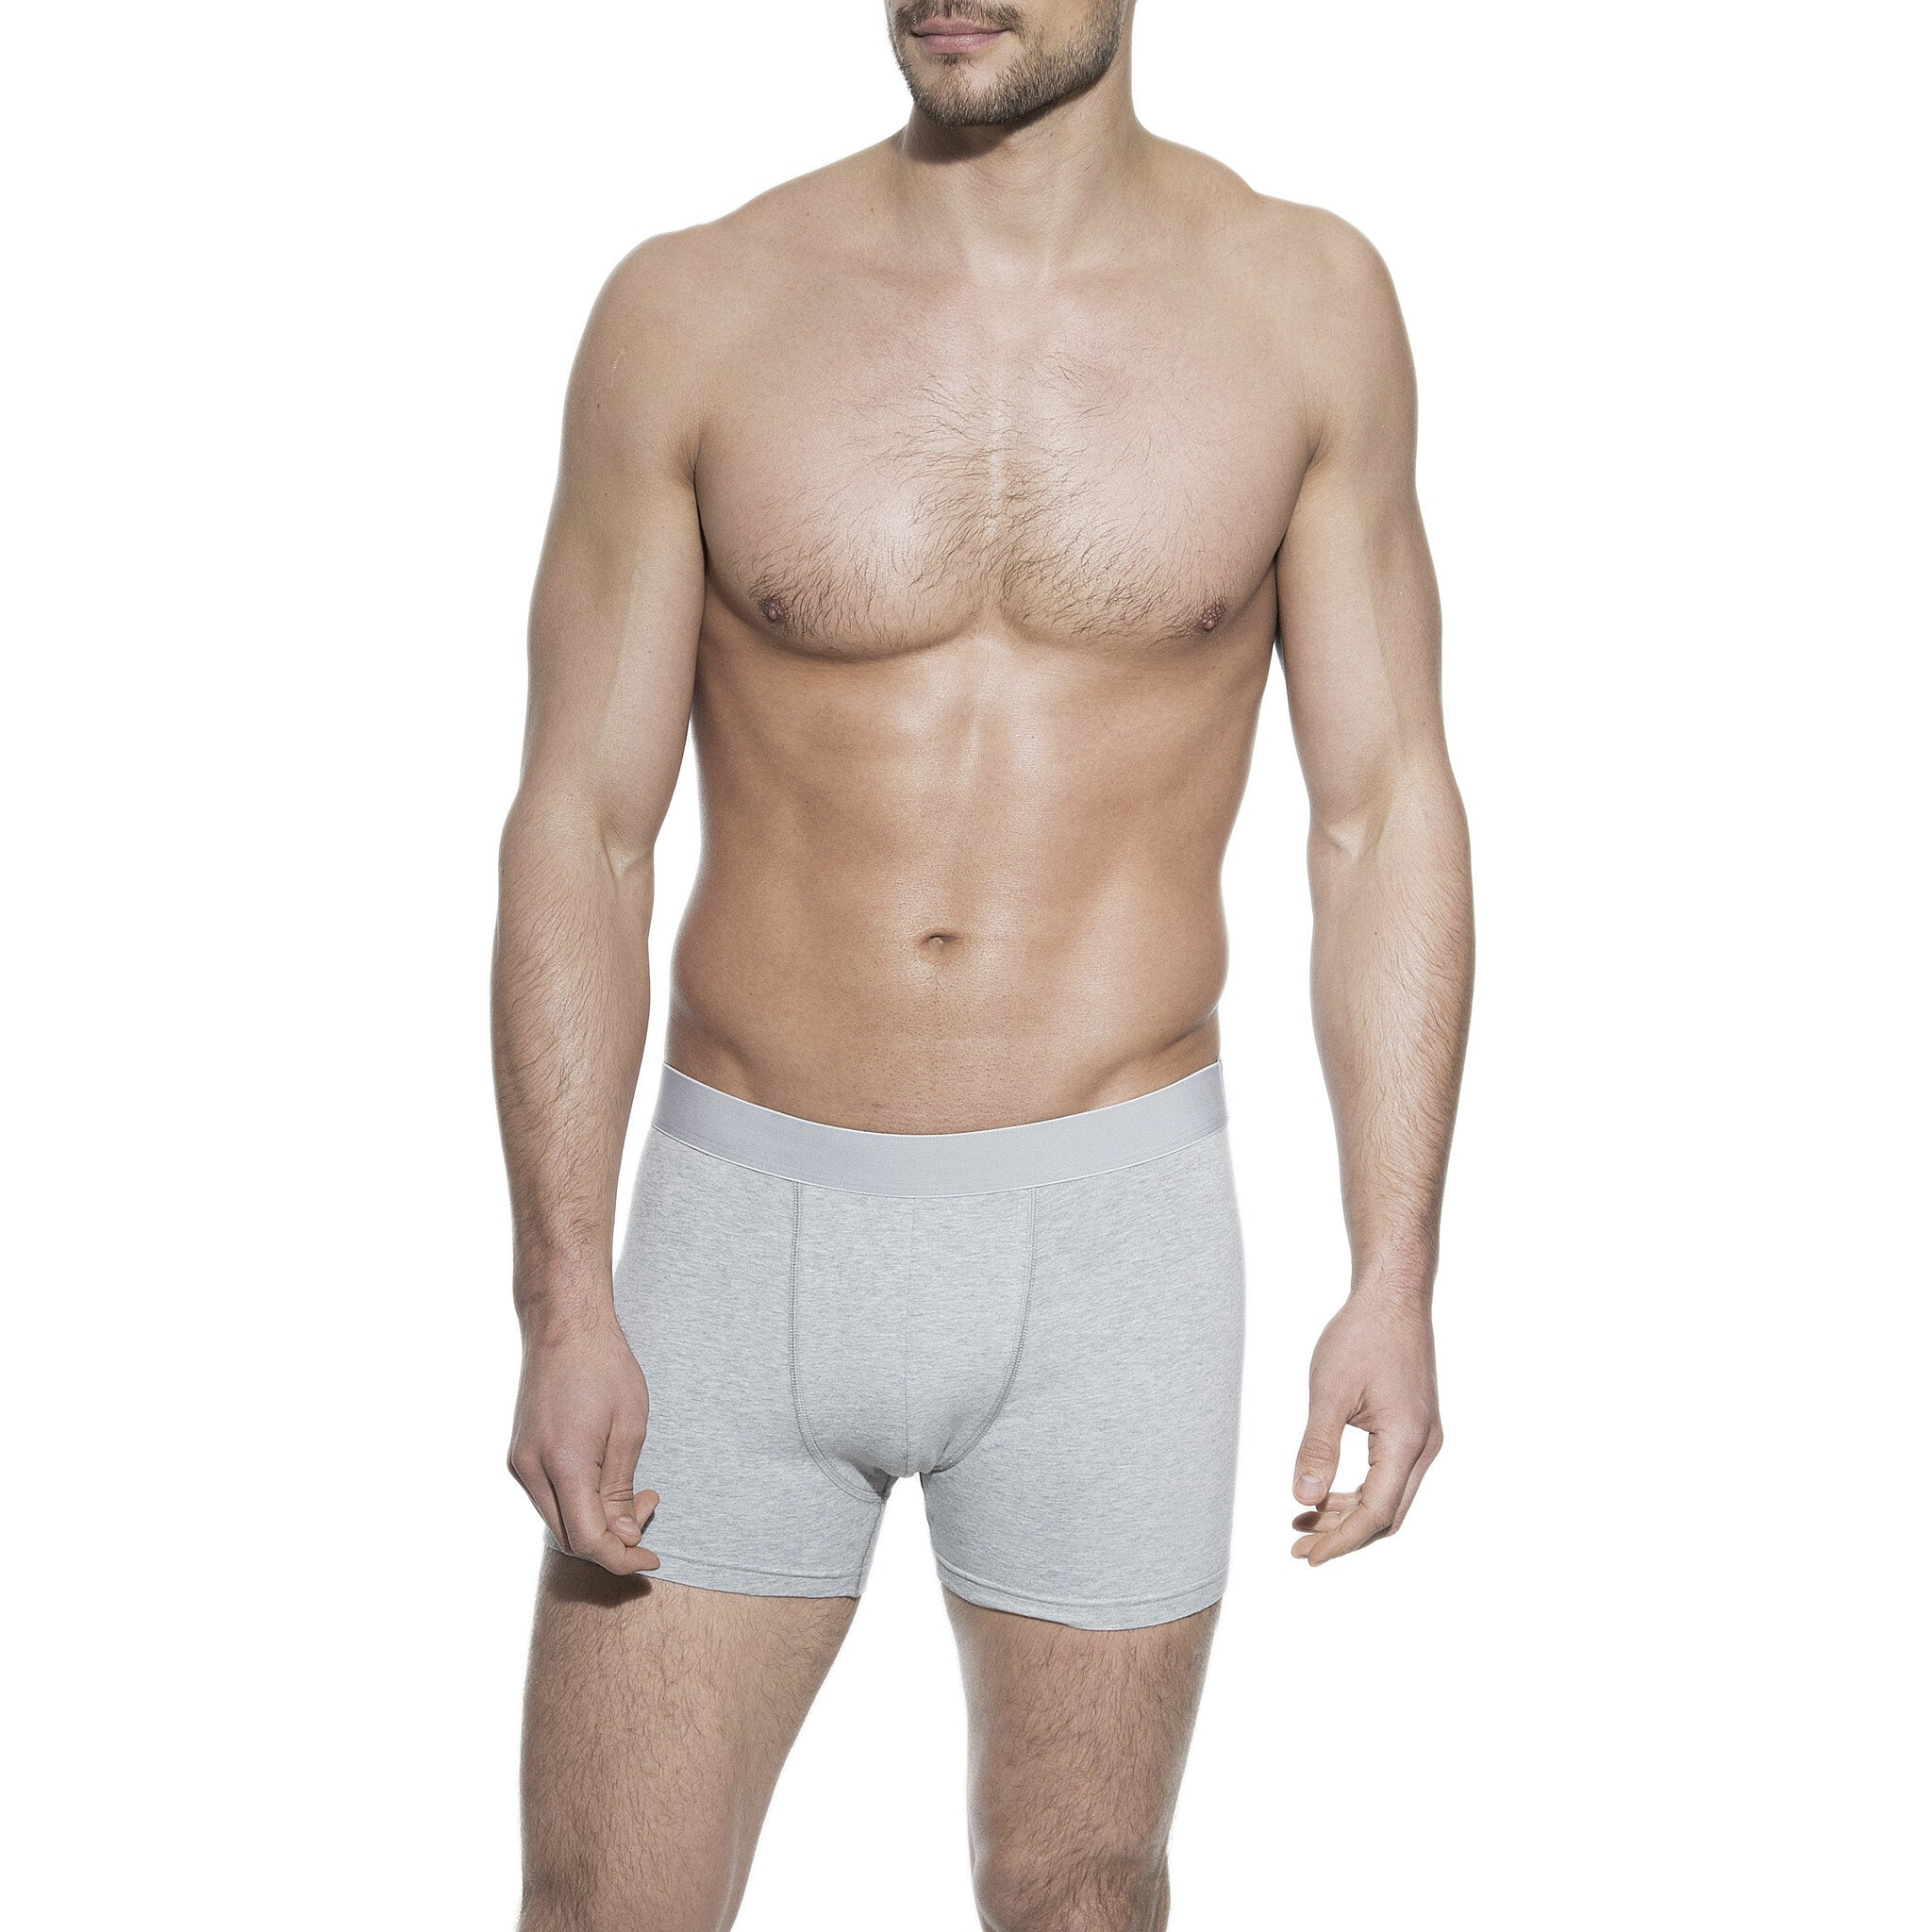 202203_Man_Boxer-Brief_grey-melange_1